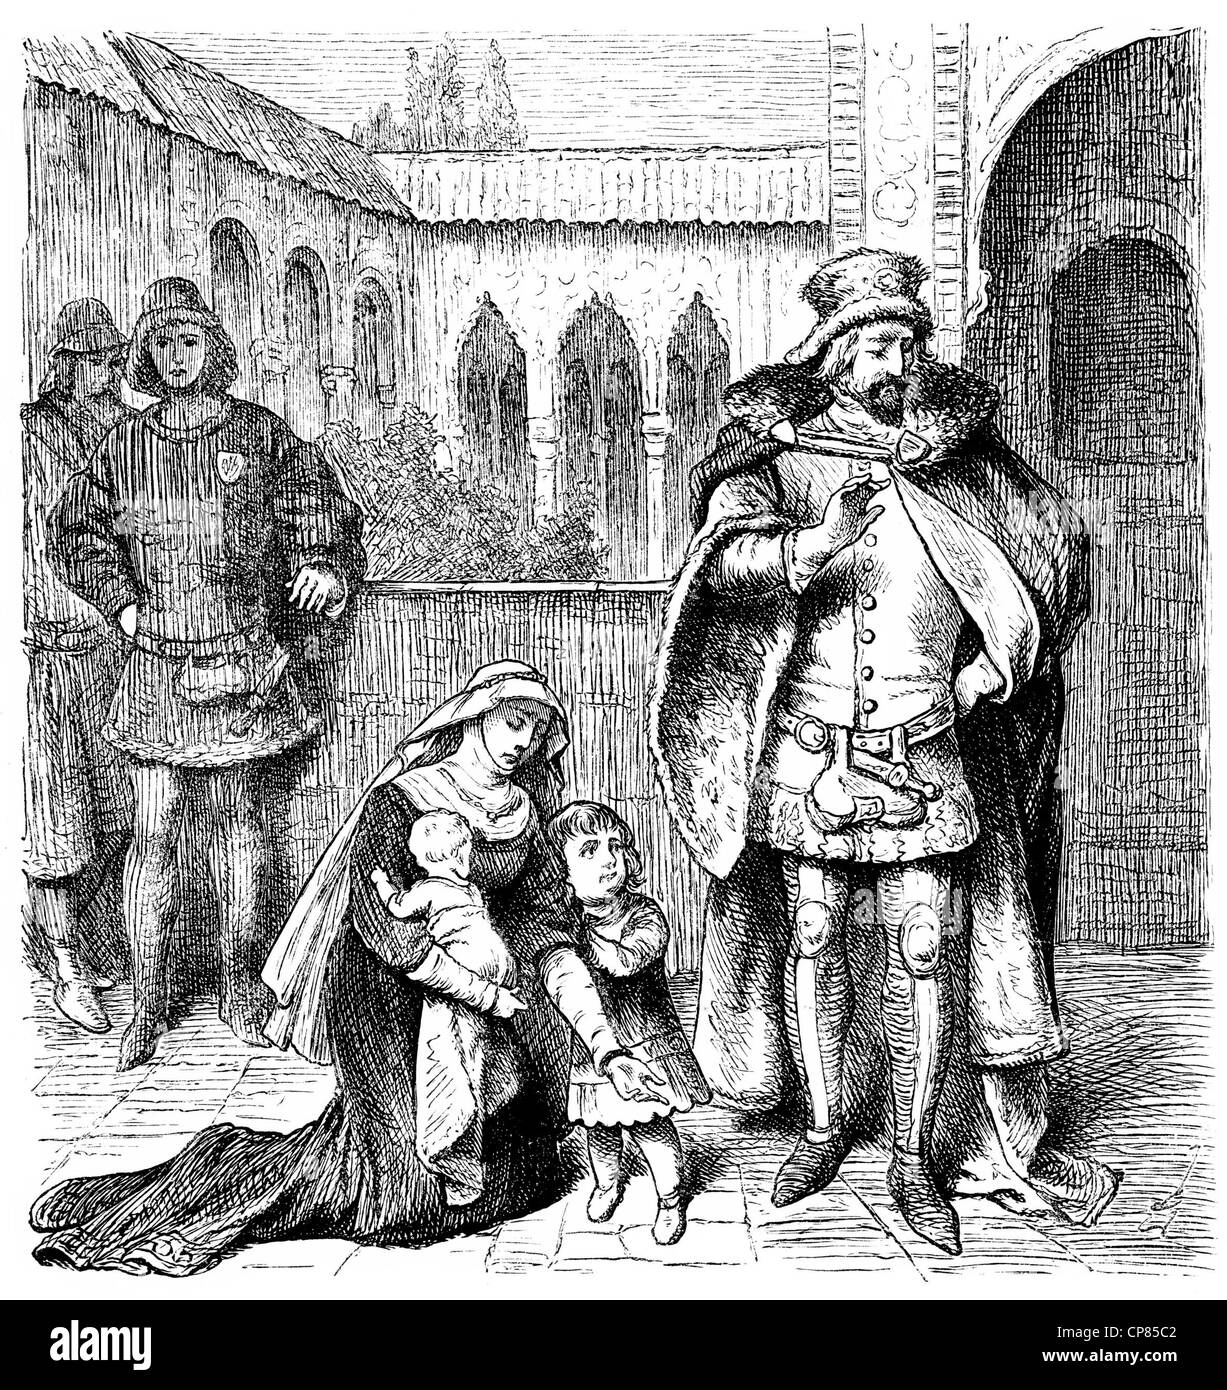 Agnes de Castro, 1325 - 1355, Queen of Portugal, kneeling in front of King Alfonso IV, historical engraving, 19th Stock Photo